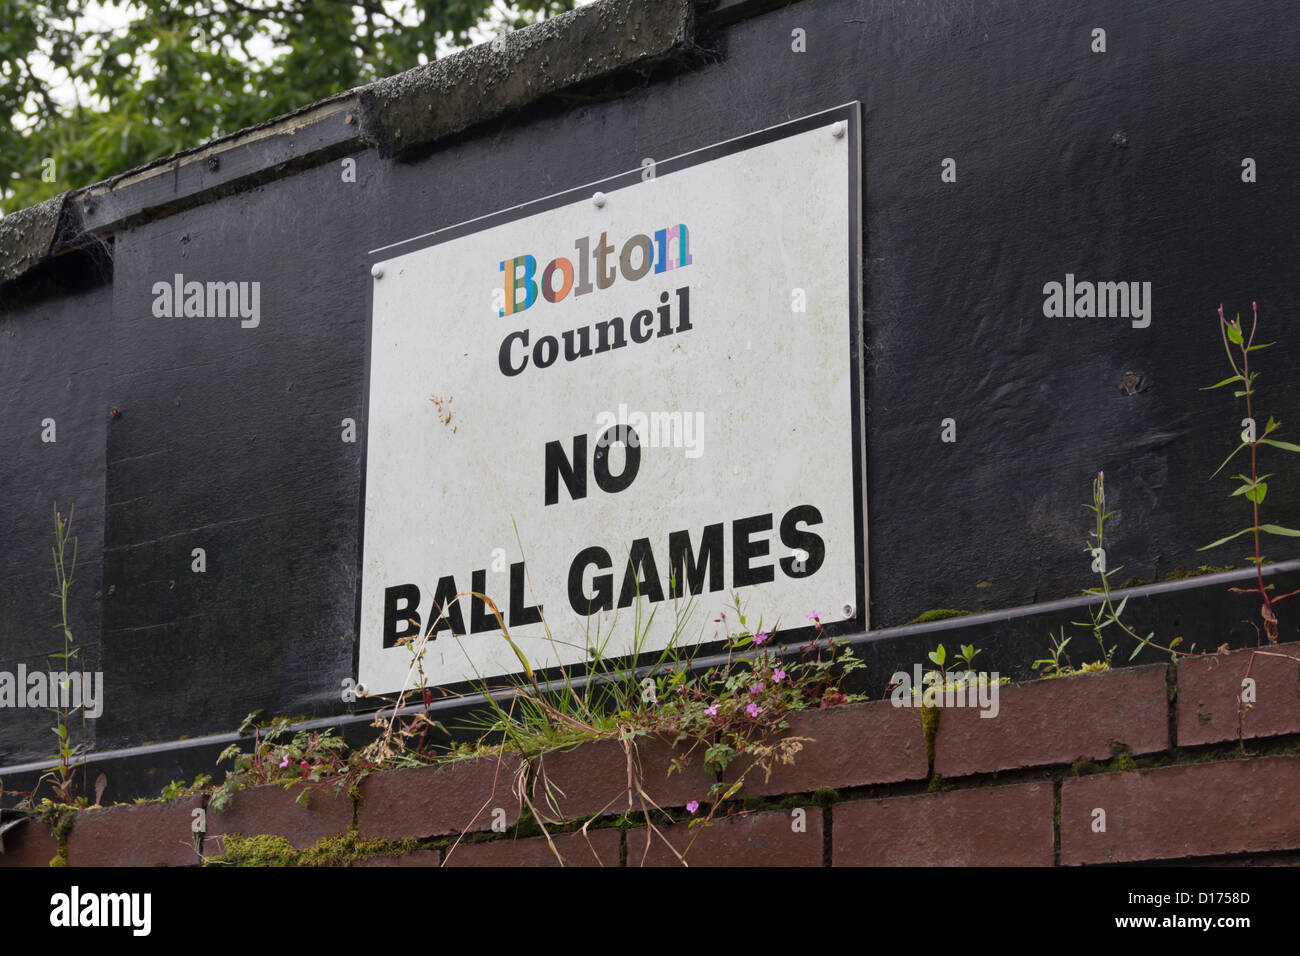 No Ball Games sign placed by Bolton Council, adjacent to a car parking area in Moss Bank Park. - Stock Image